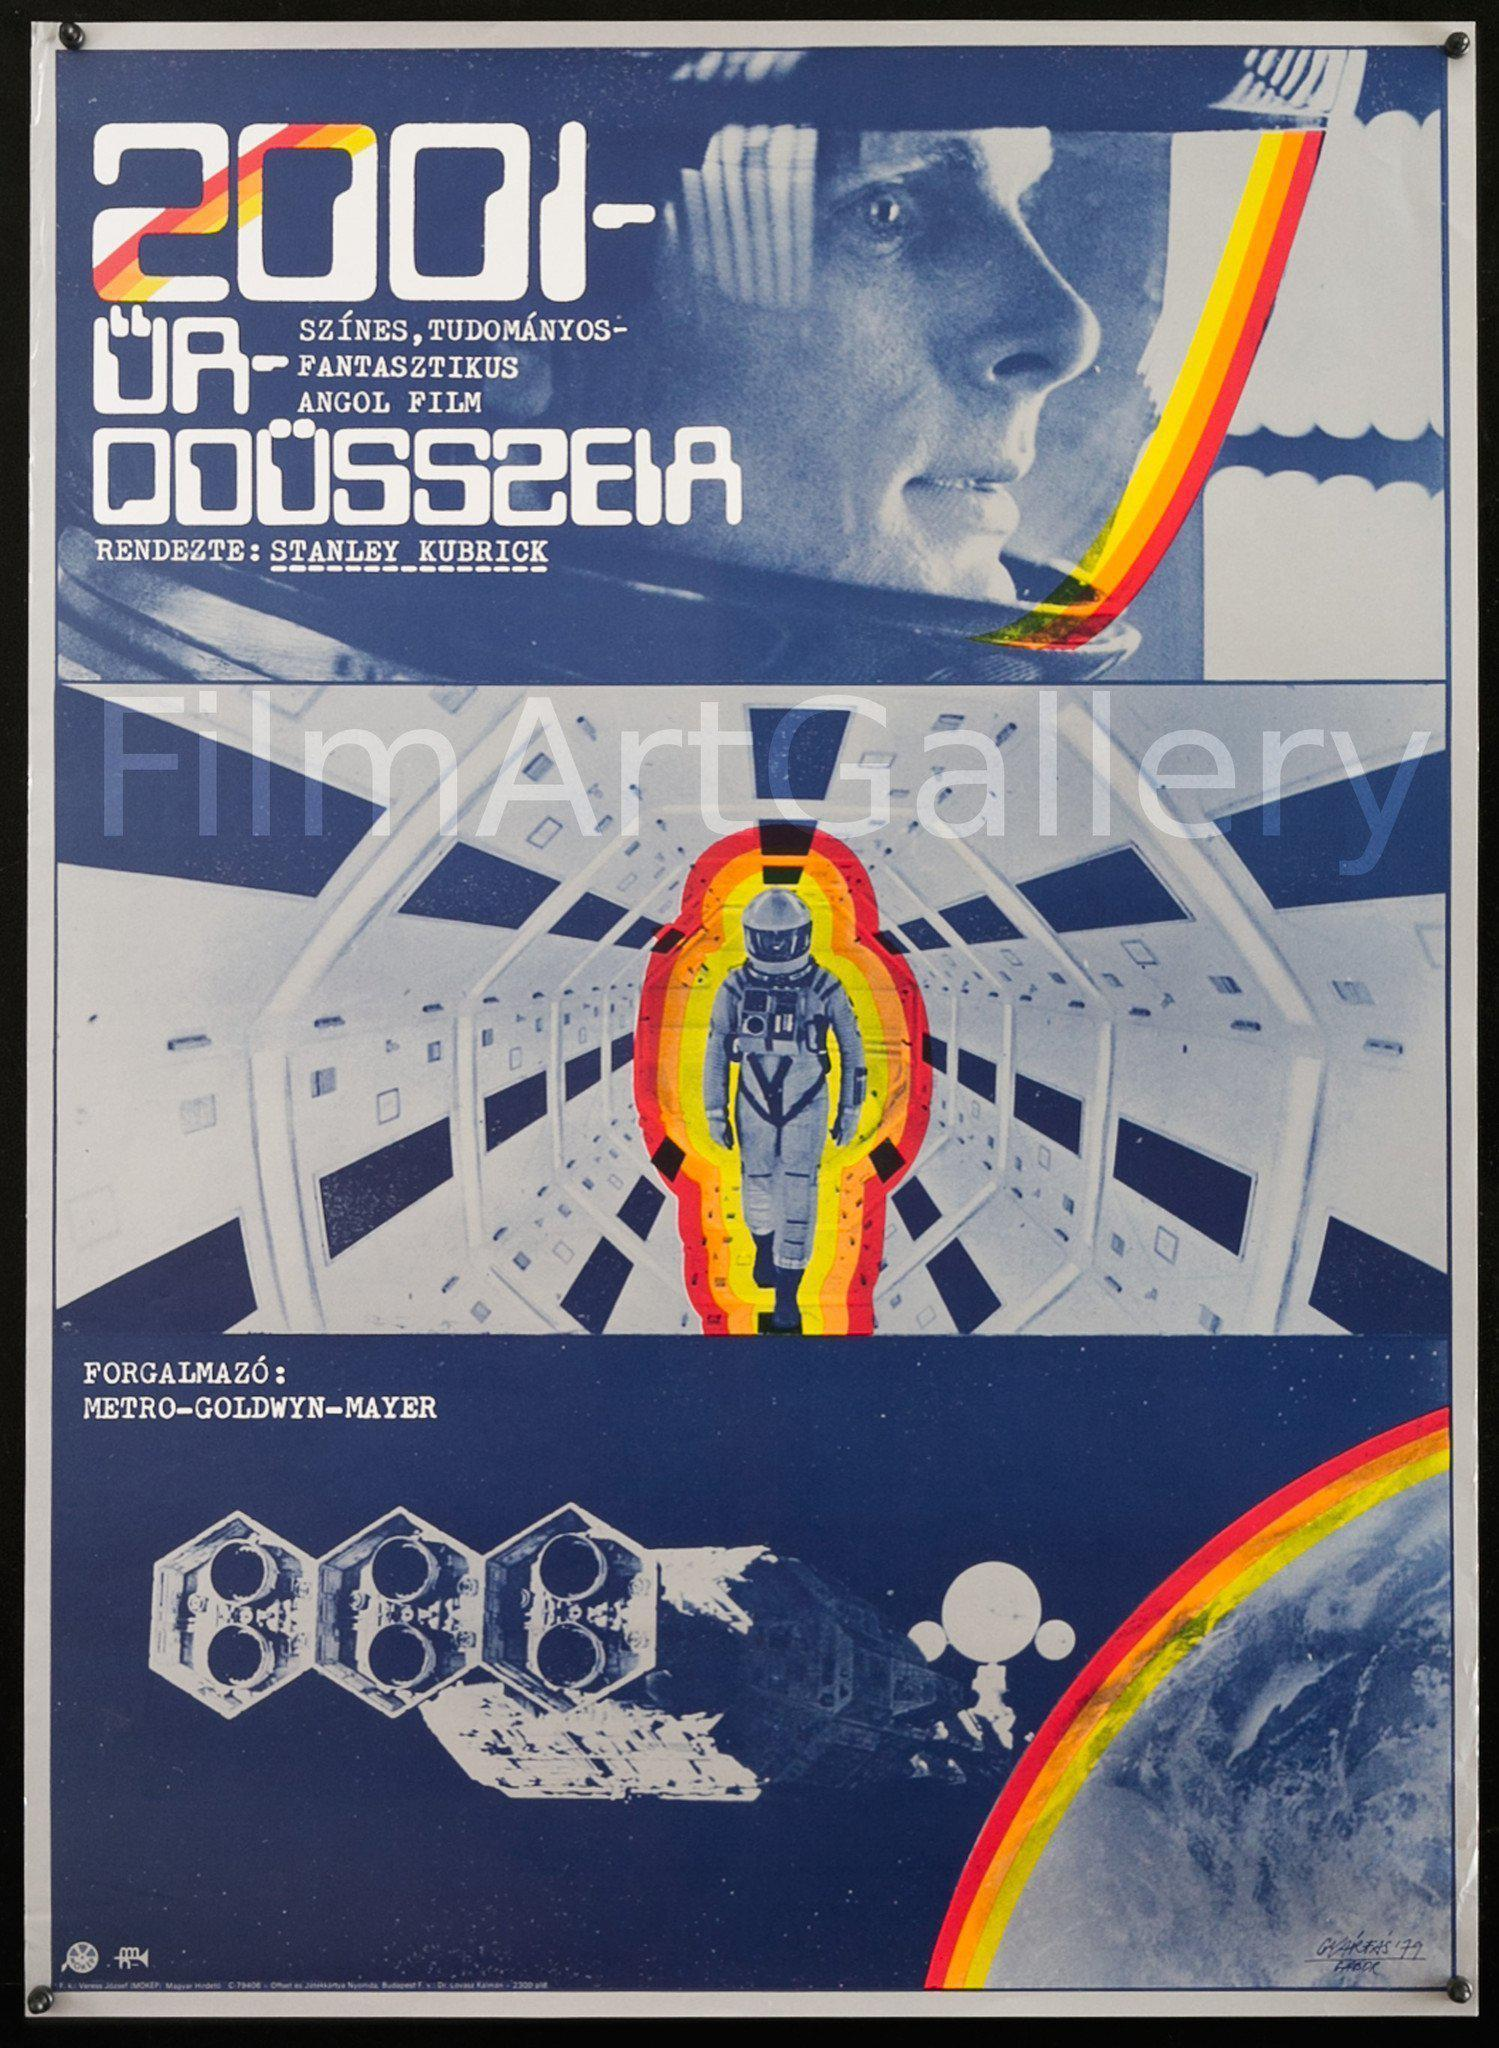 2001 A Space Odyssey 22x30 Original Vintage Movie Poster